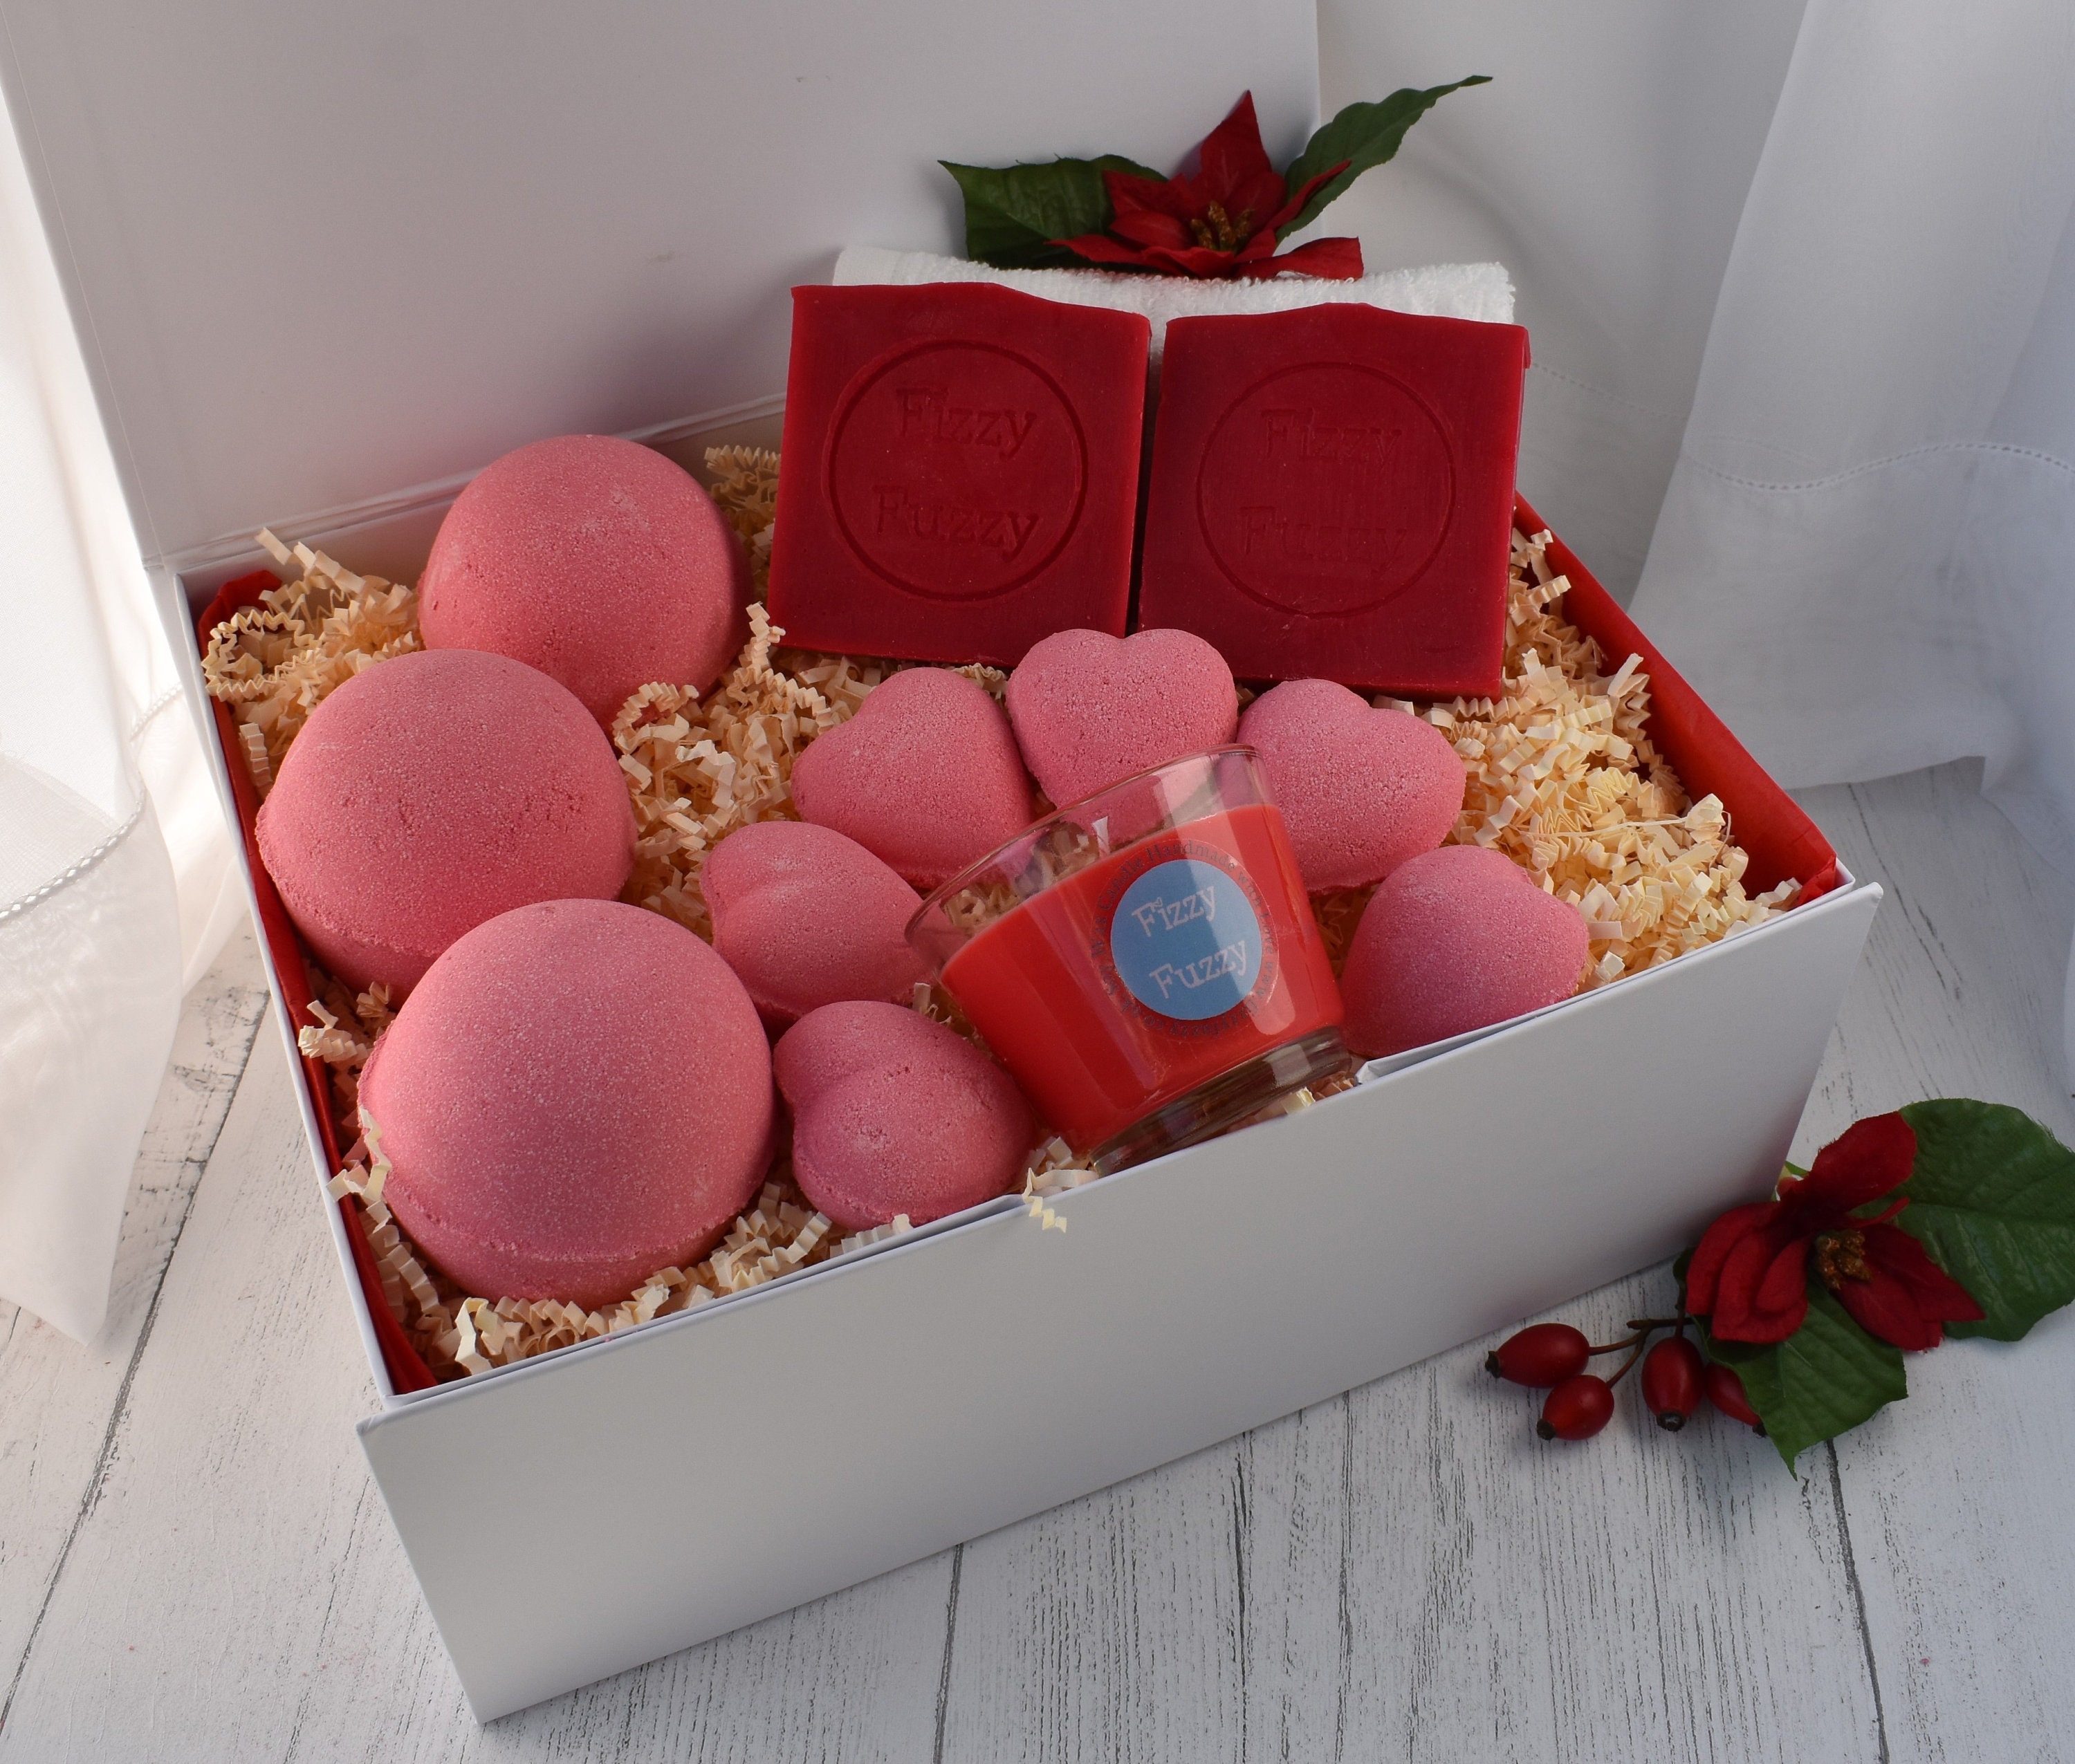 Luxury Soap Soy Wax Candles Bath Bombs Gift Set Box For Mum Friend Daughter Other Gift Party Supplies Home Garden